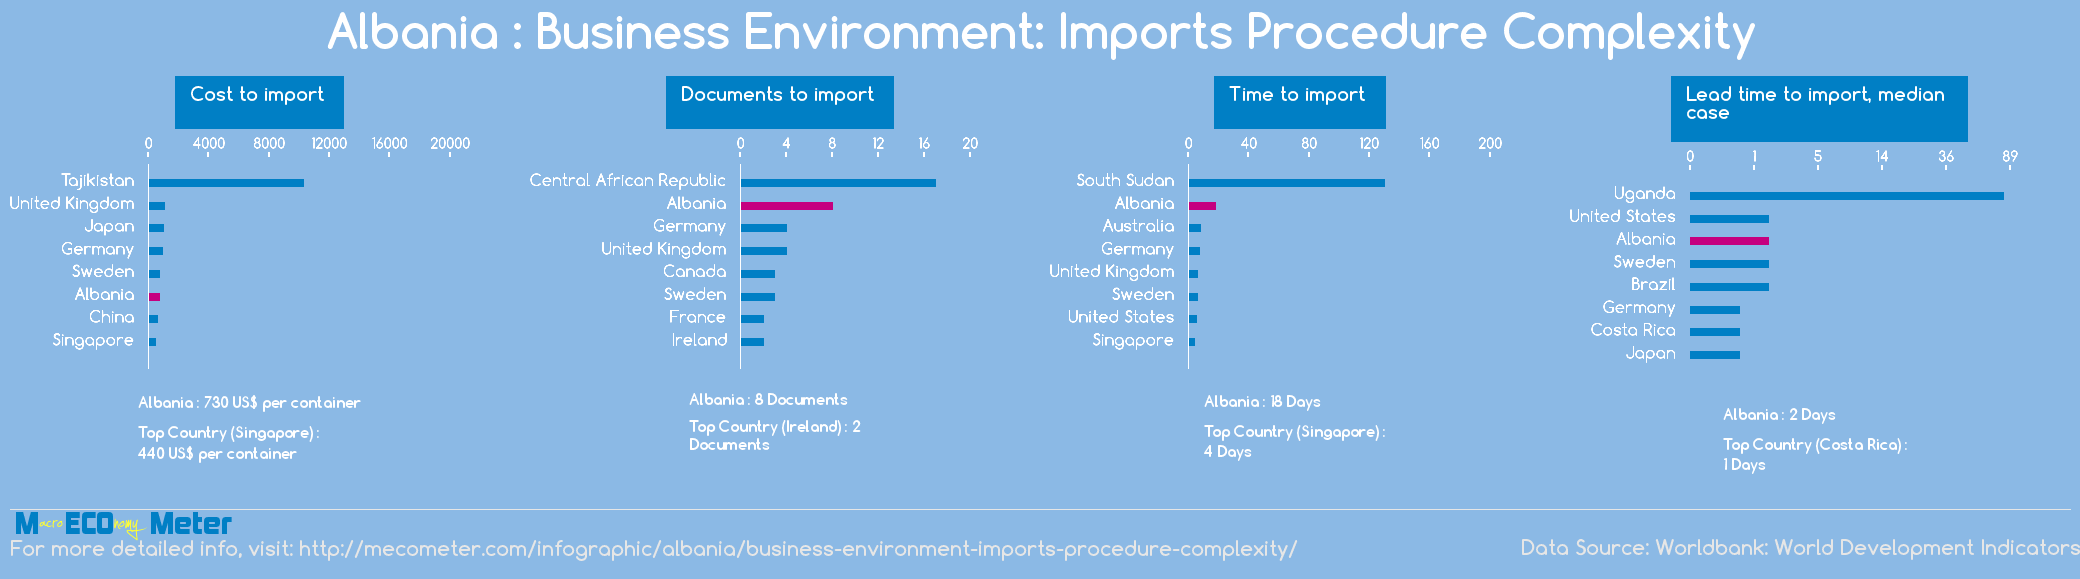 Albania : Business Environment: Imports Procedure Complexity